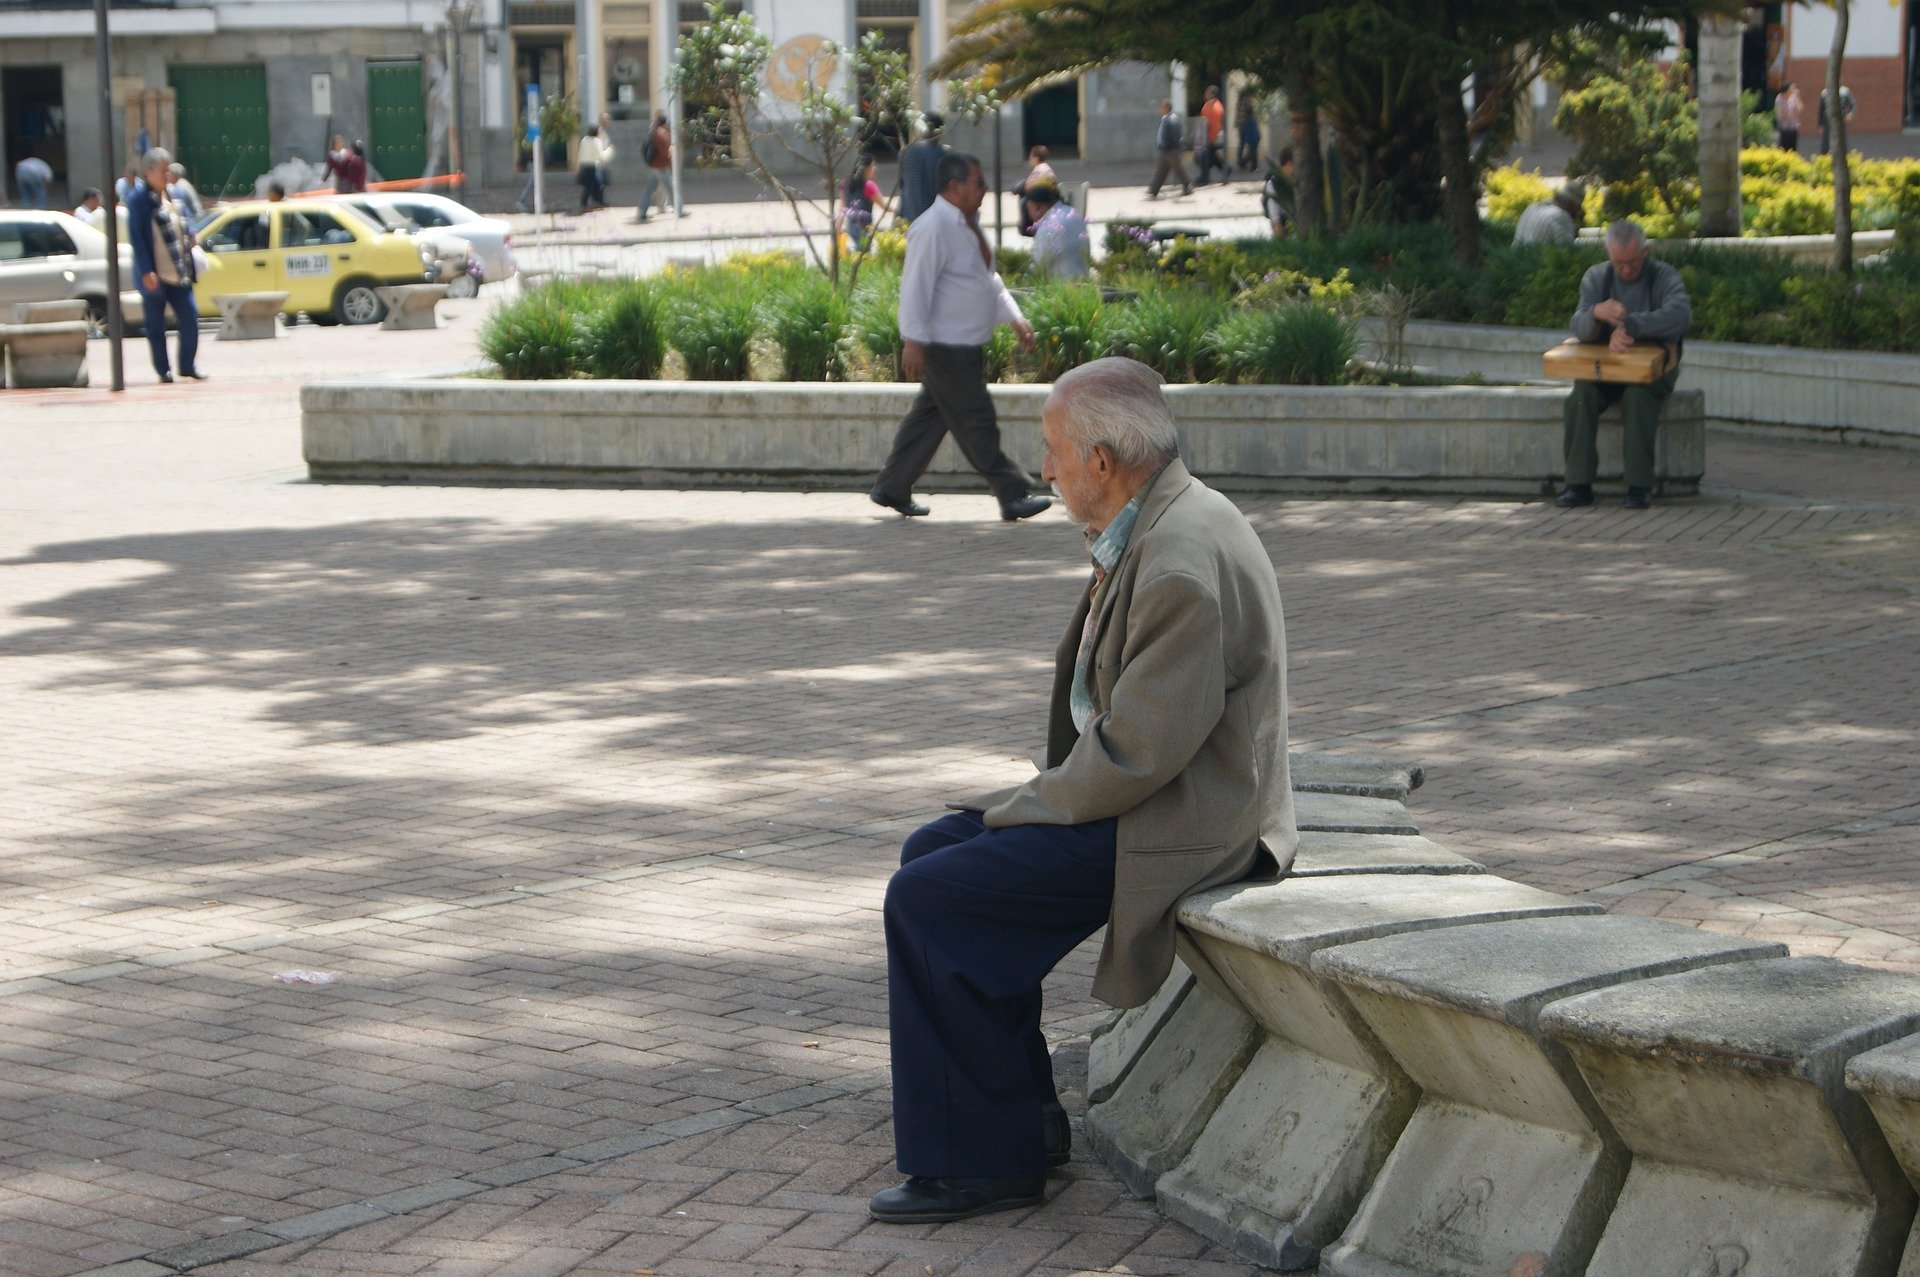 Loneliness a leading cause of depression in older adults